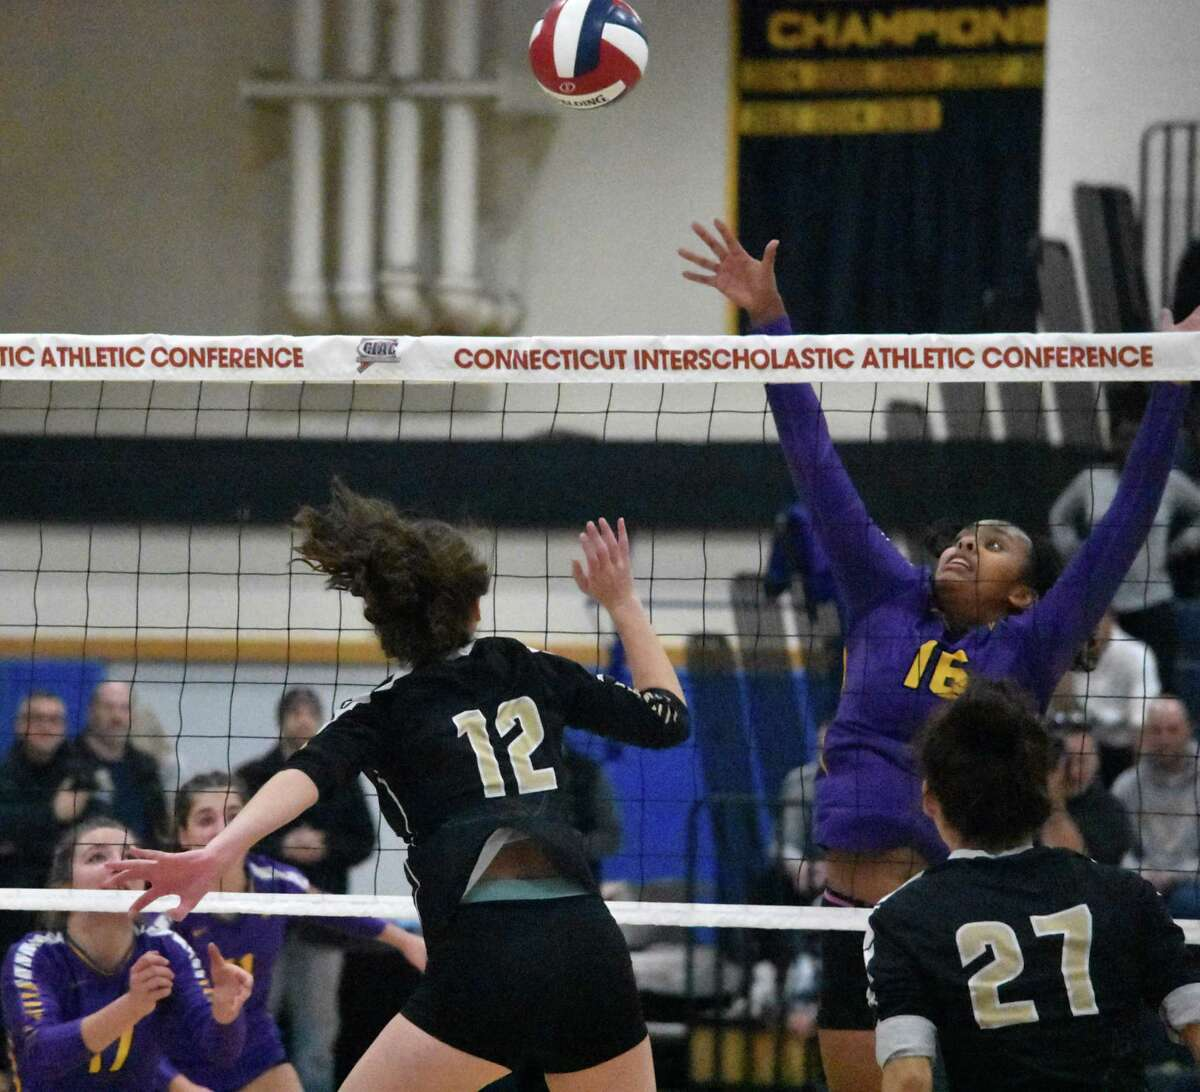 Westhill's Tamar Bellete tries to block a spike in the Class LL girls volleyball state championship match between Trumbull and Westhill at East Haven high, East Have on Saturday, Nov. 23, 2019. (Pete Paguaga, Hearst Connecticut Media)